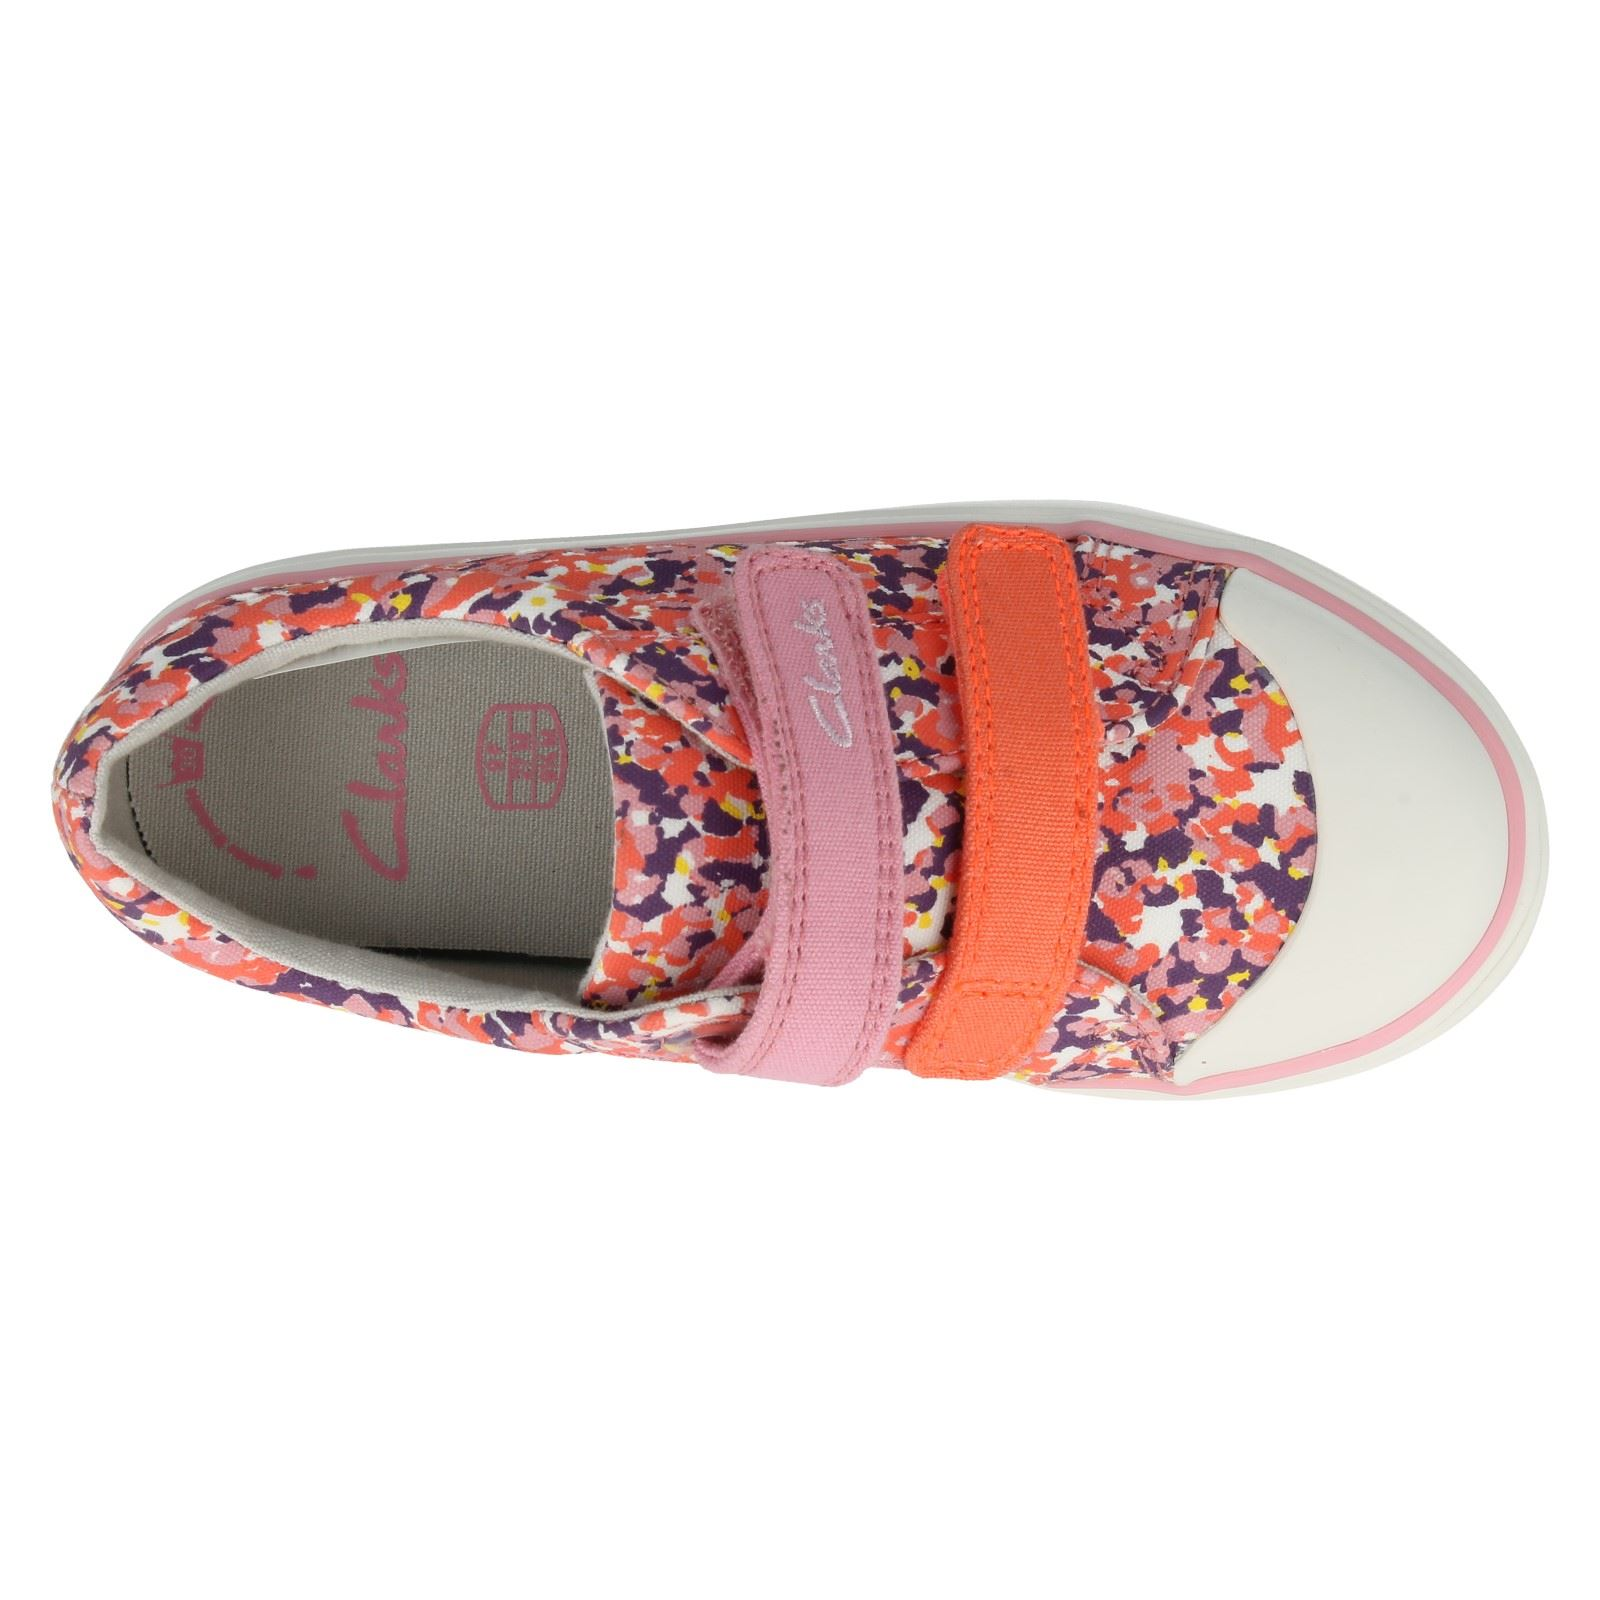 Girls Clarks Canvas Shoes The Style Brill Ice